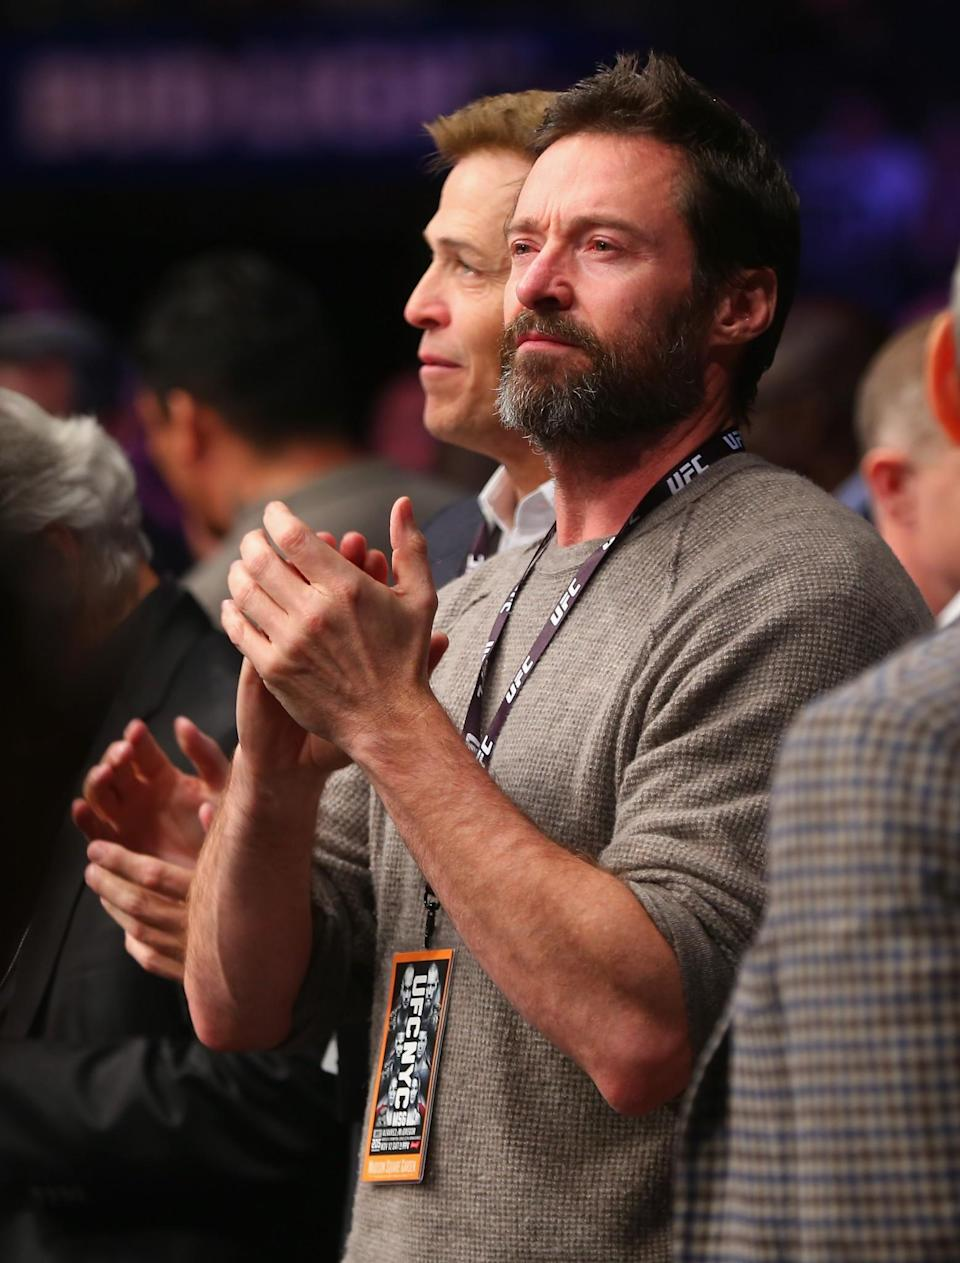 <p>Actor Hugh Jackman is seen during the UFC 205 event at Madison Square Garden on November 12, 2016 in New York City. (Photo by Mike Stobe/Zuffa LLC/Zuffa LLC via Getty Images) </p>